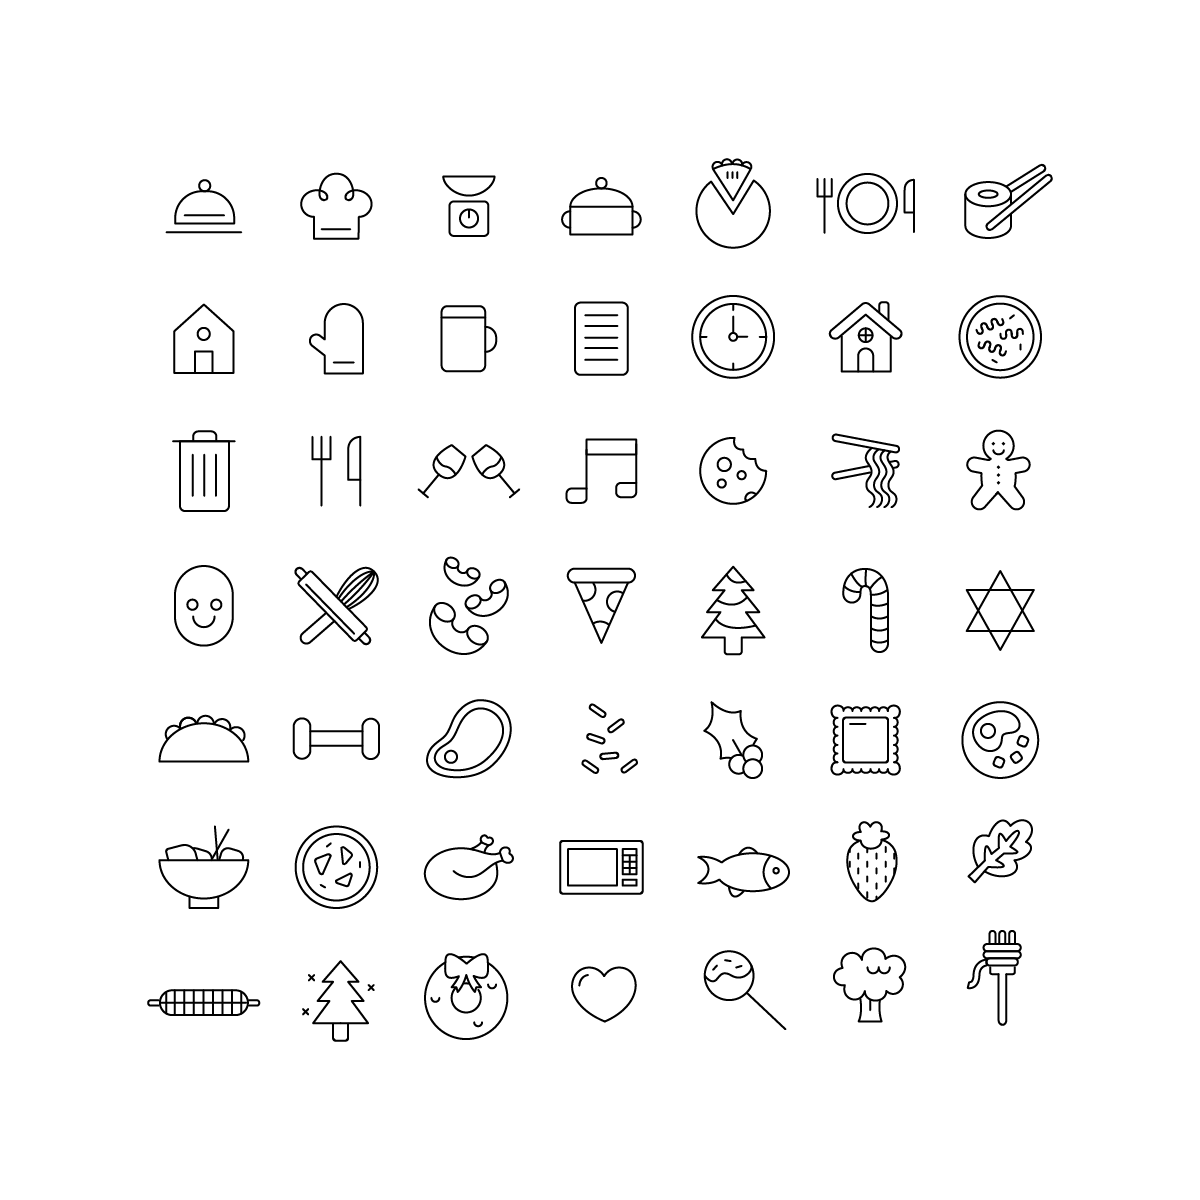 cad_ftm_icons-01.png